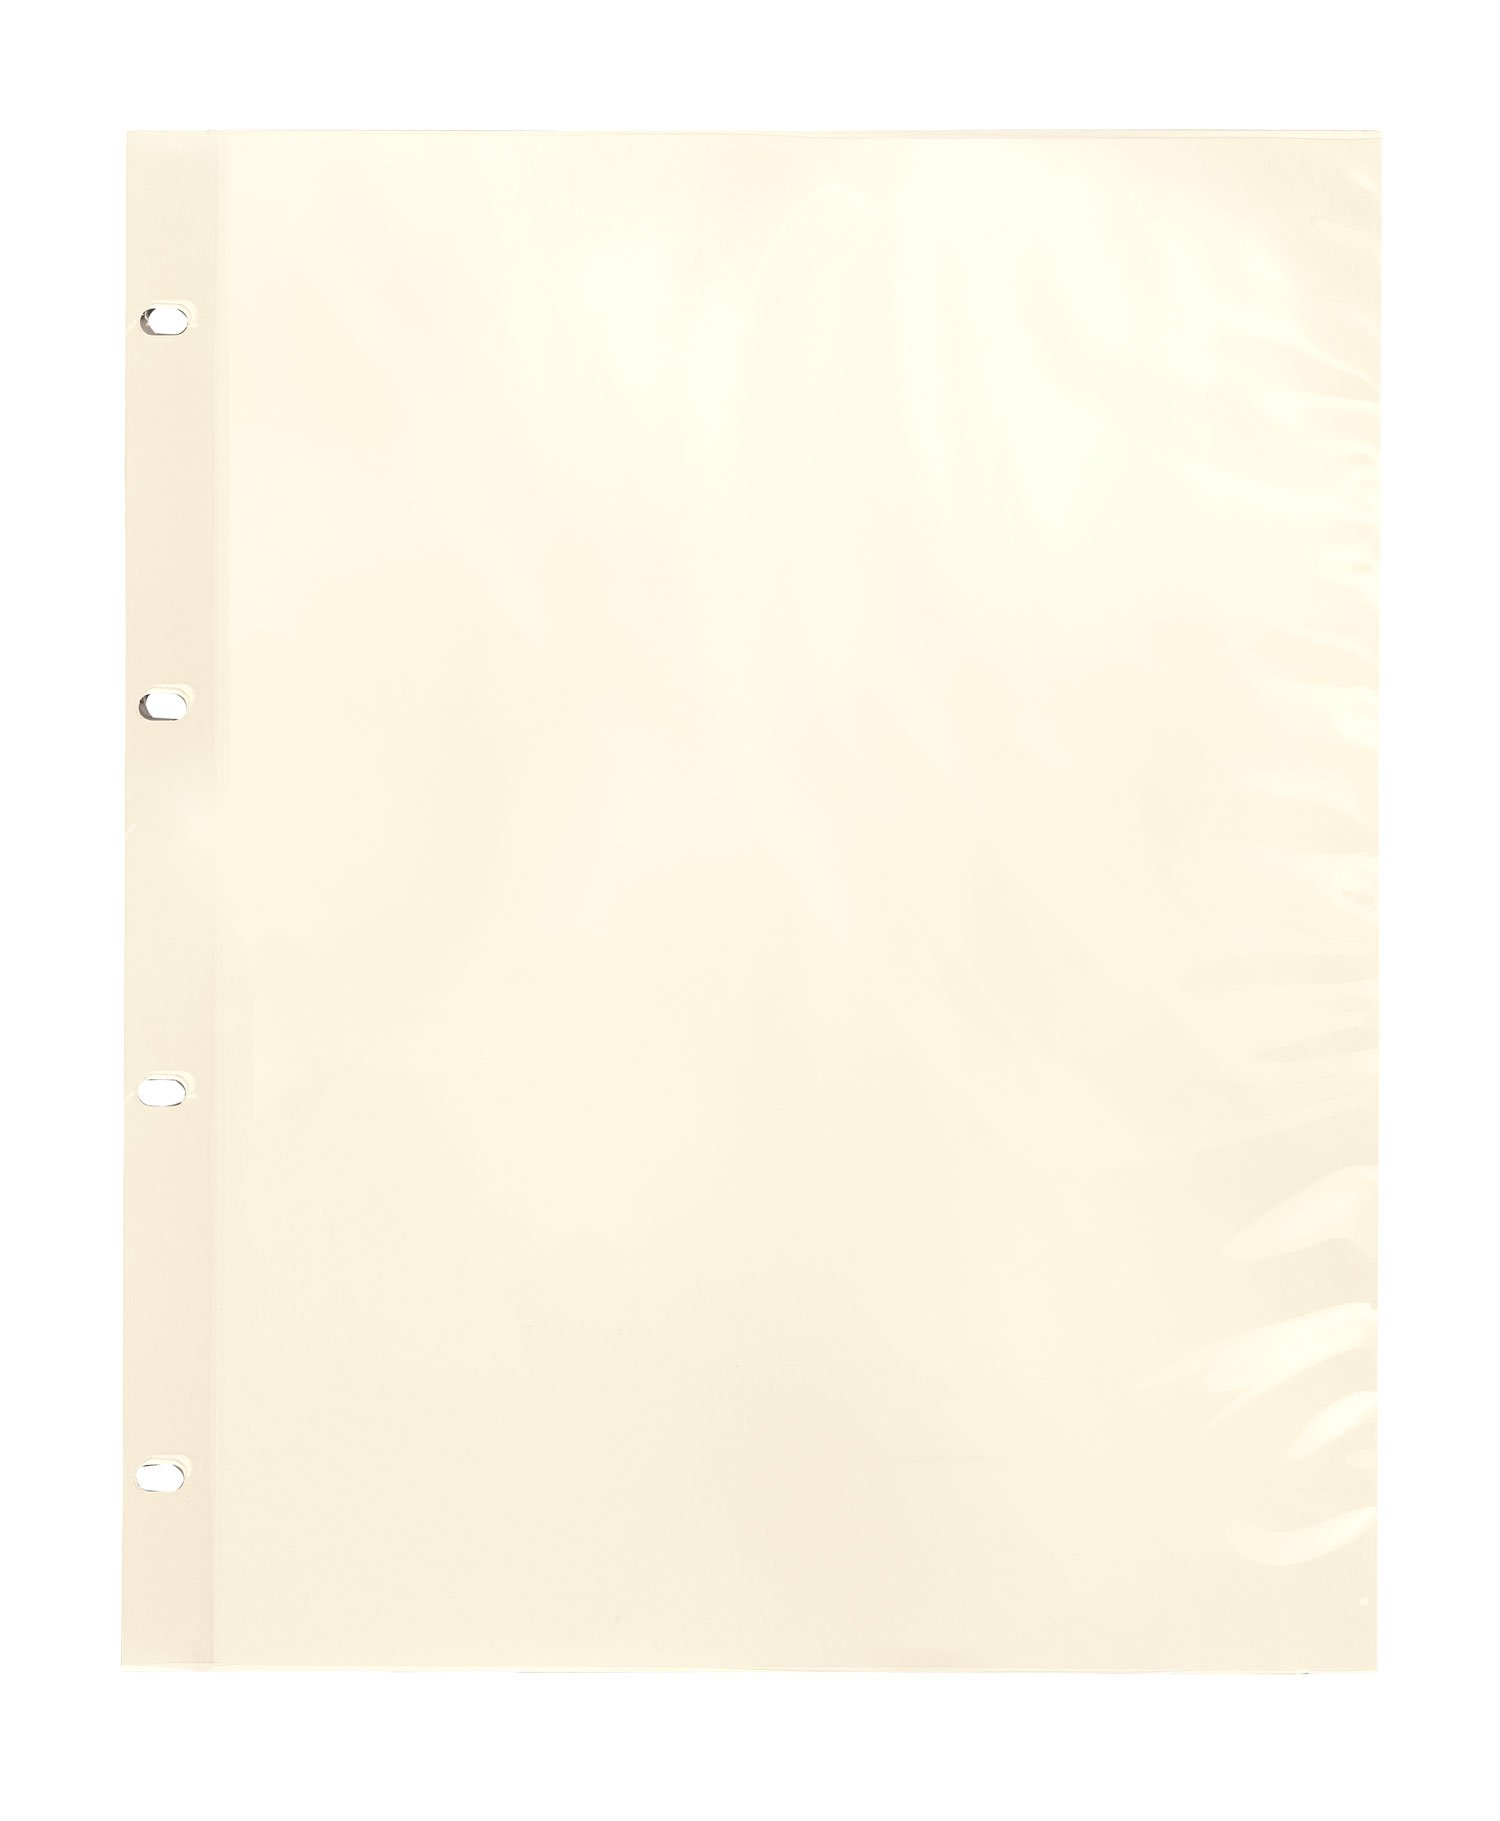 Fox Valley Traders Oversize Album Pages Sheet Protectors Ivory